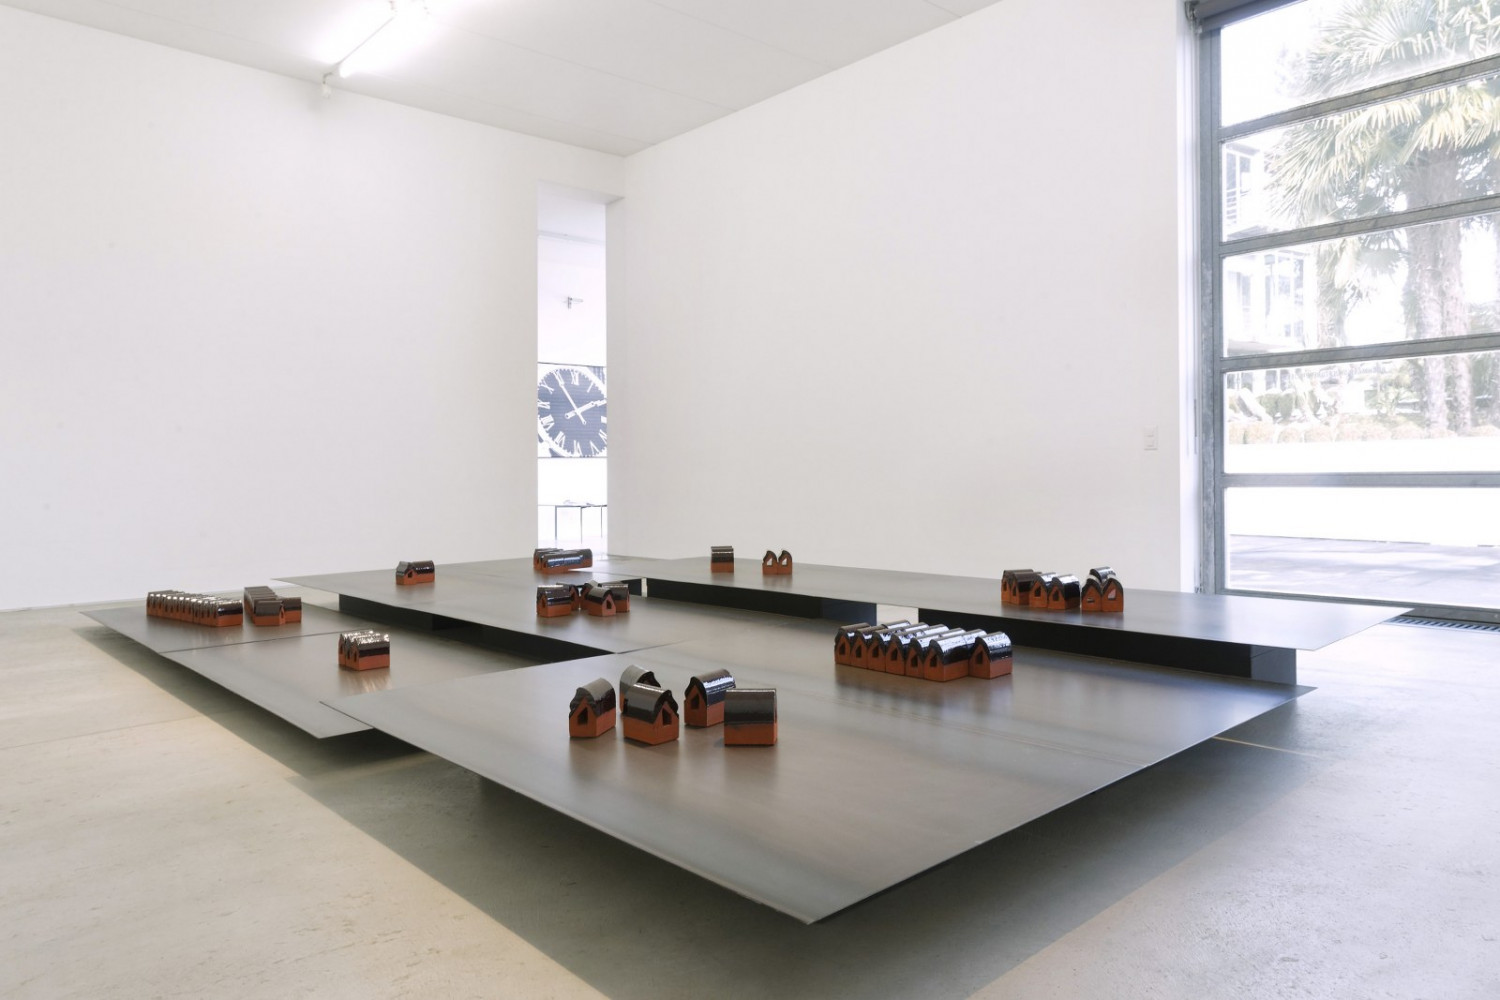 Bettina Pousttchi, 'Plano Piloto', Installation view